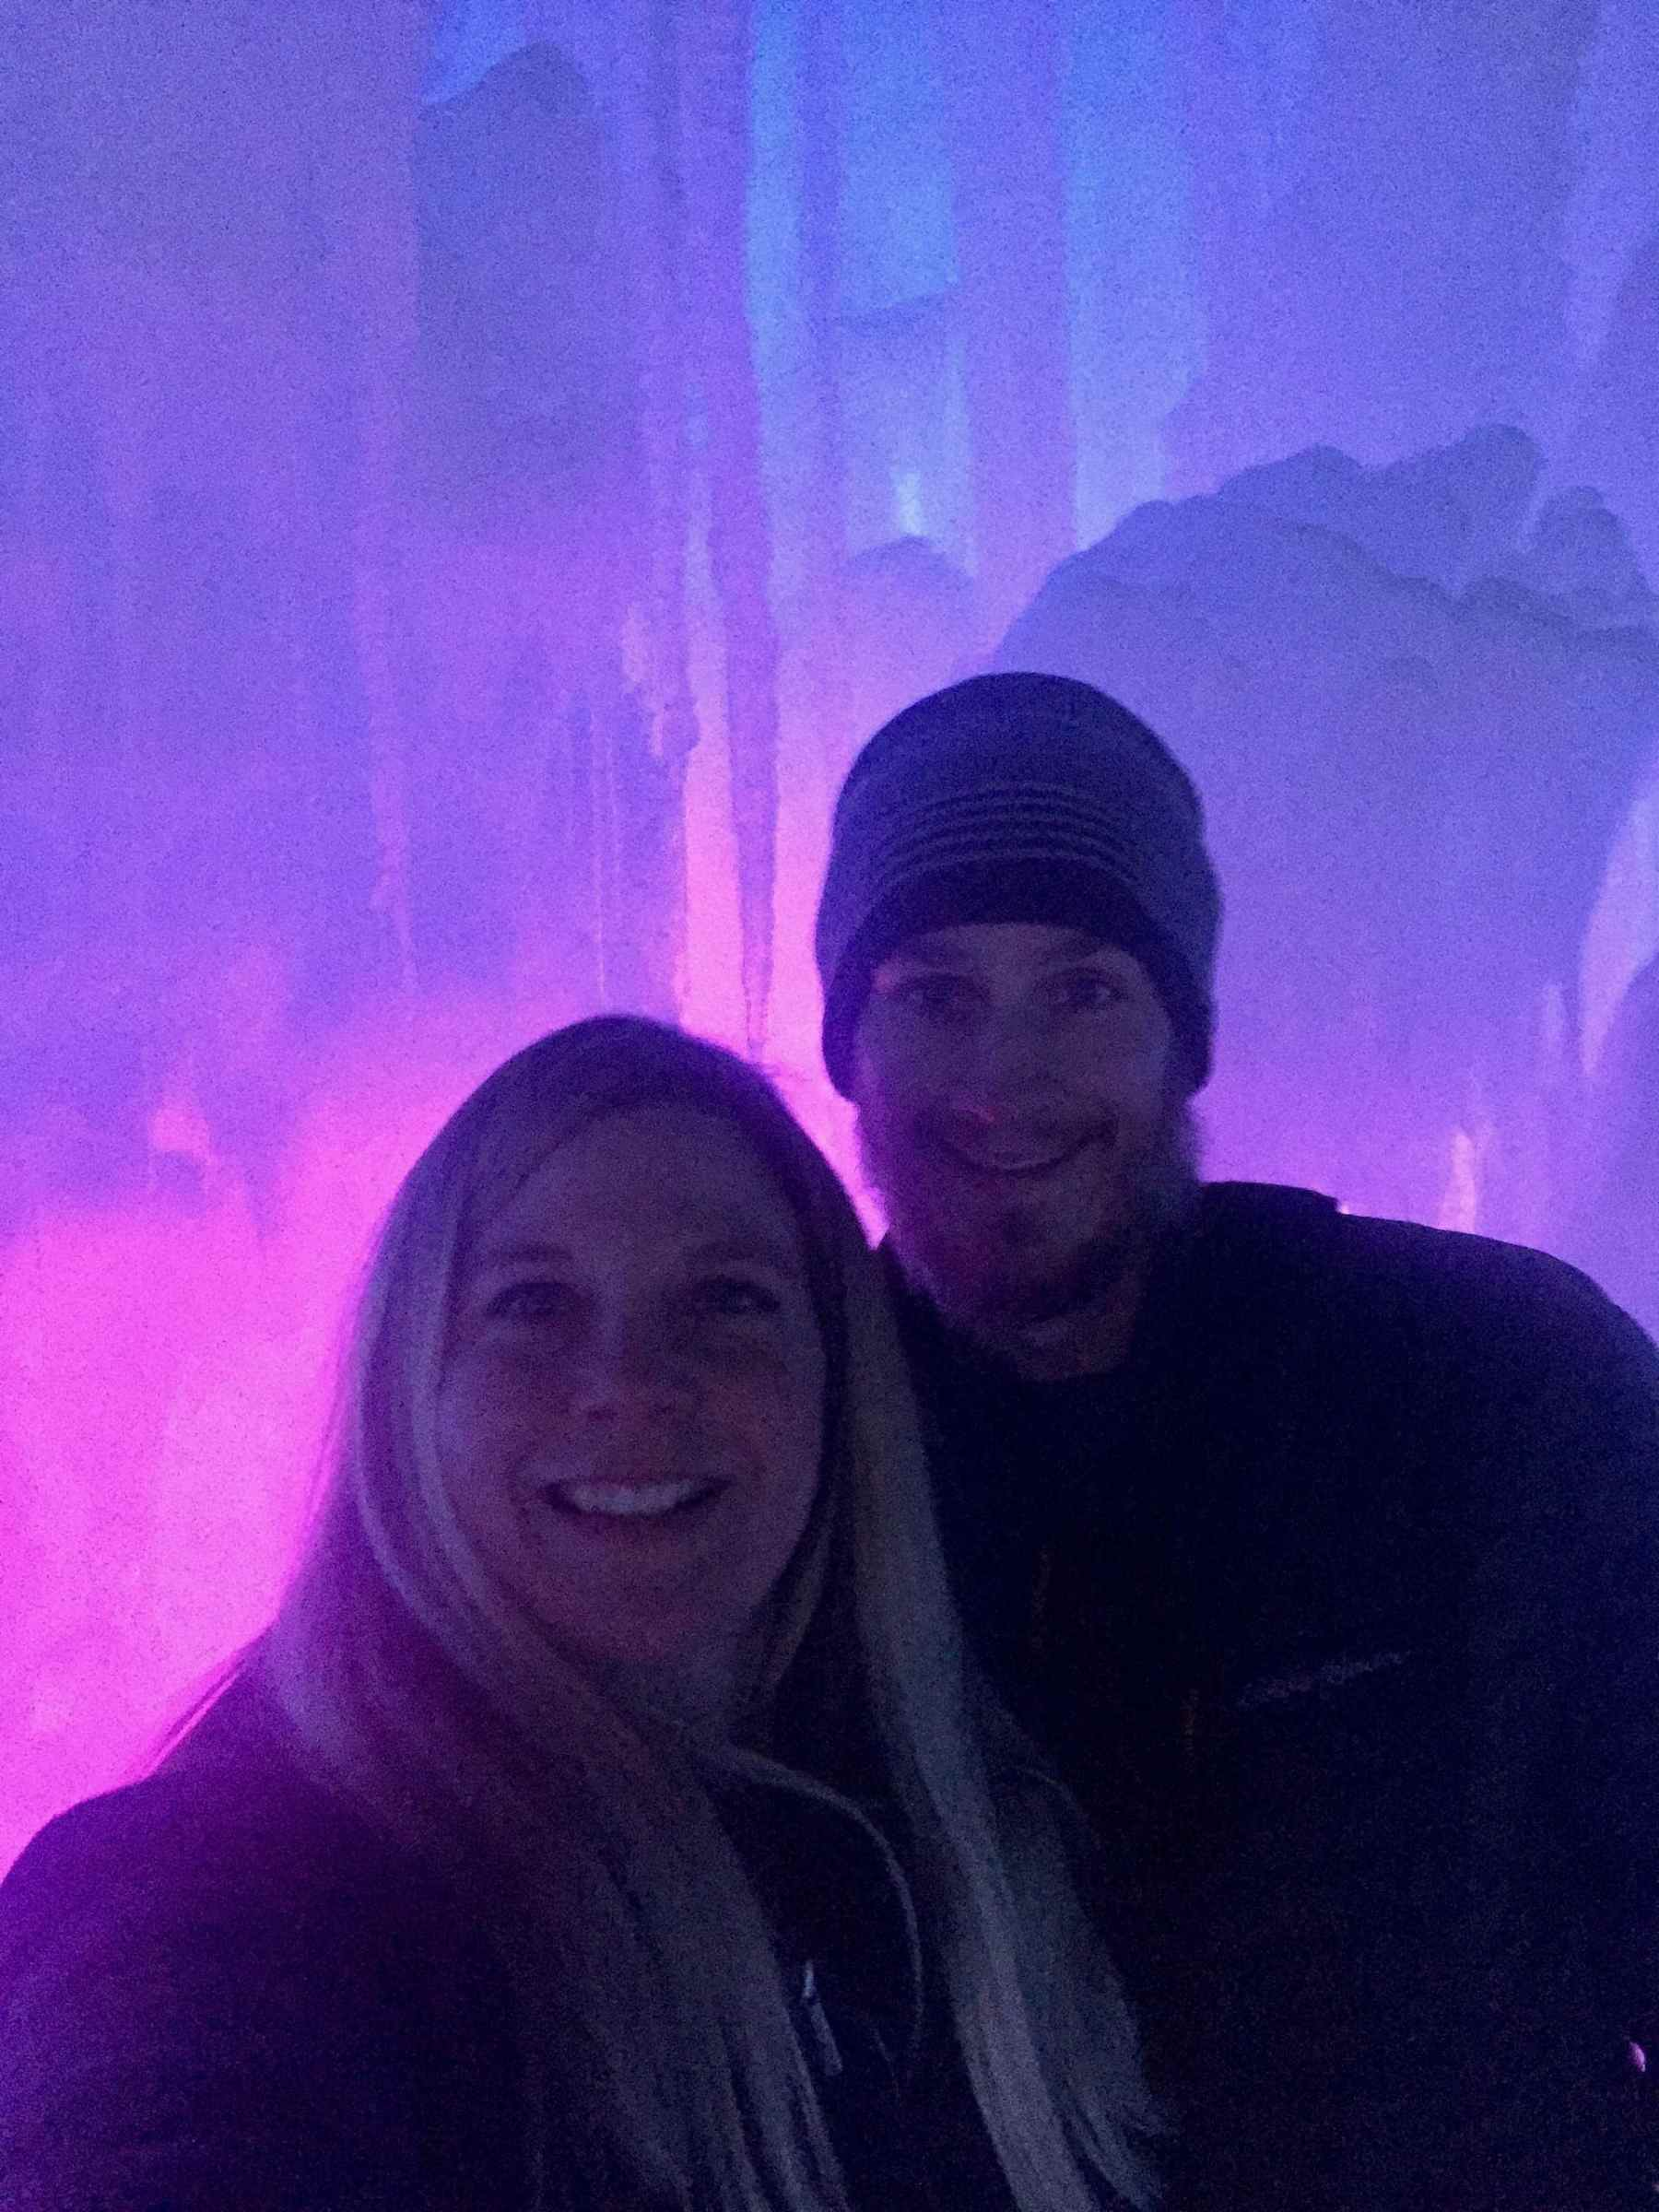 Selfie at the Ice Castles